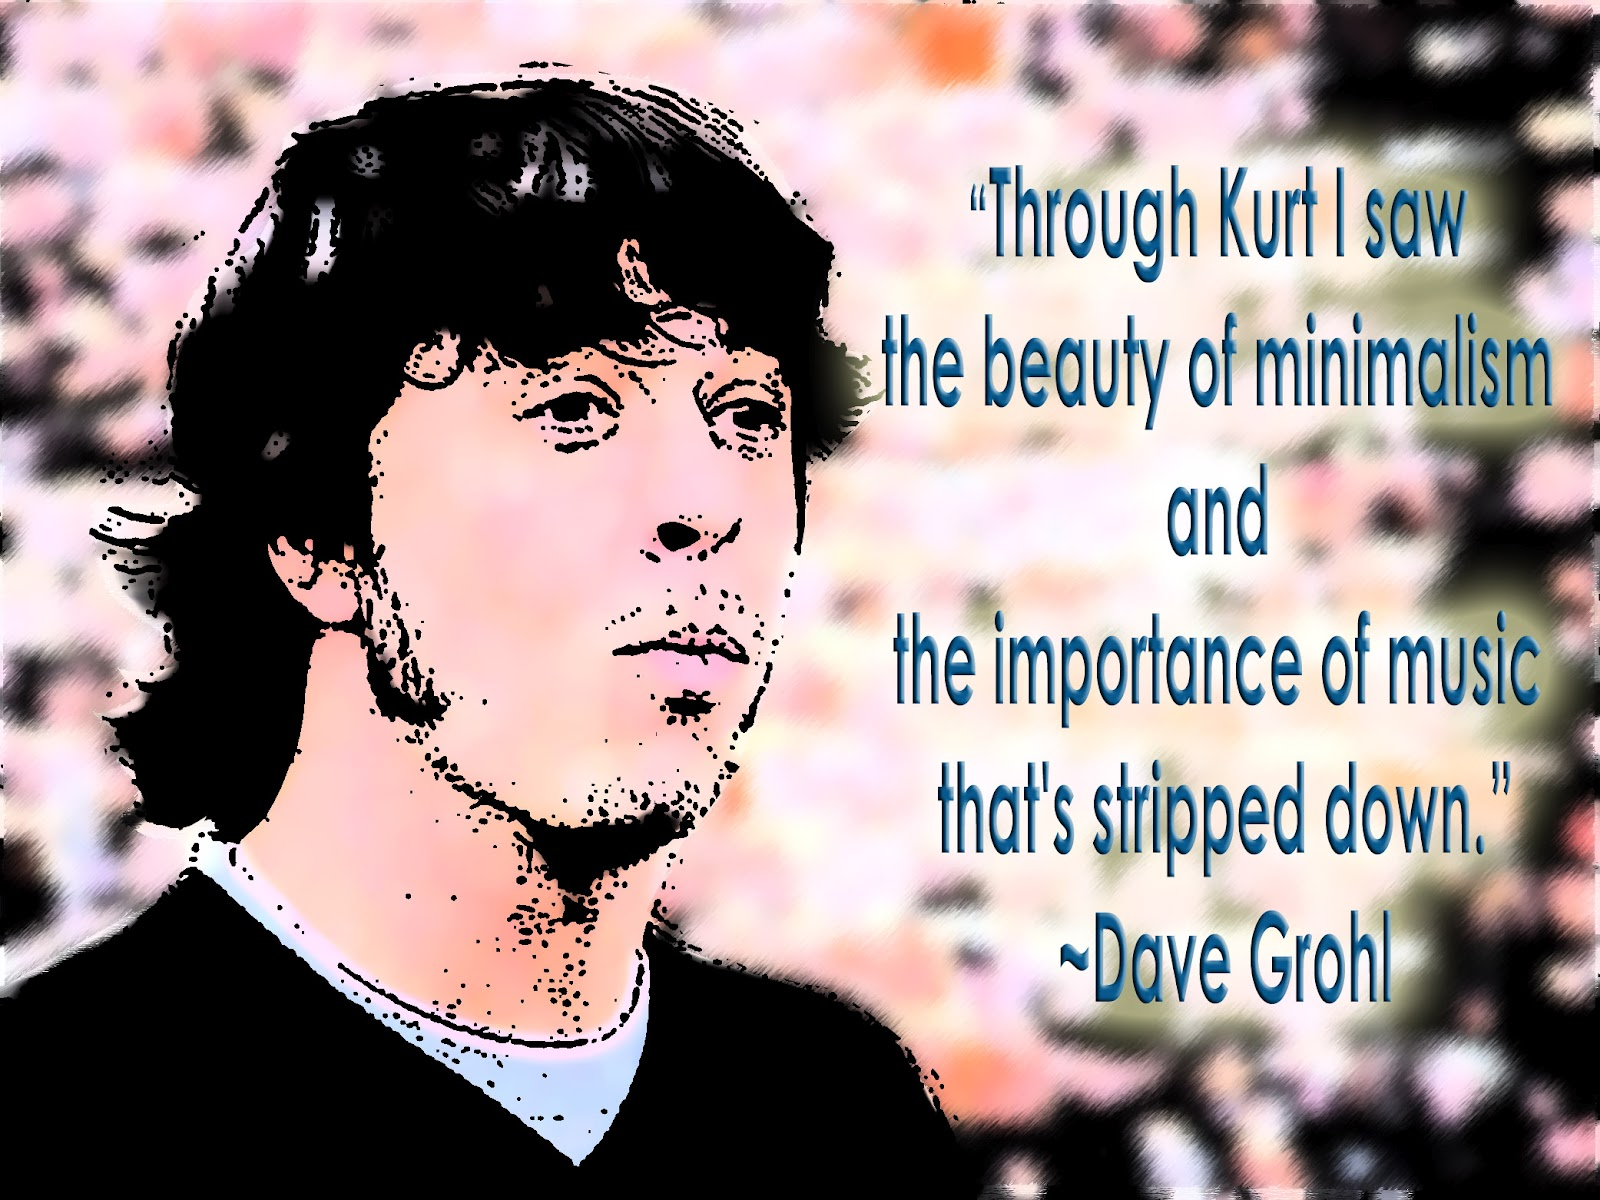 Dave Grohl's quote #7